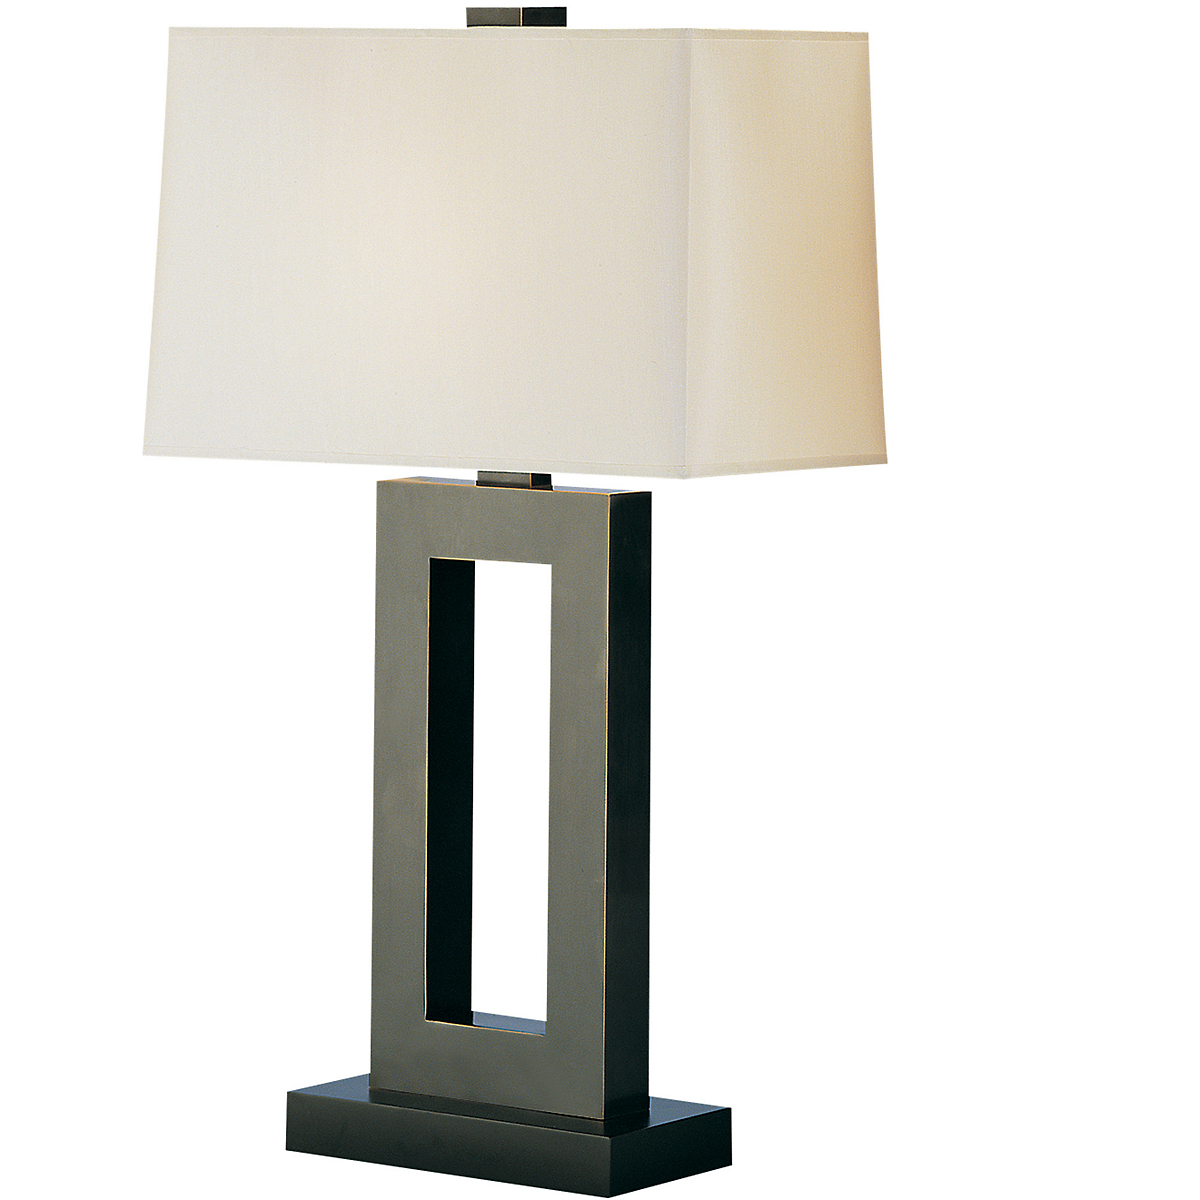 Dionne Table Lamp, Bronze